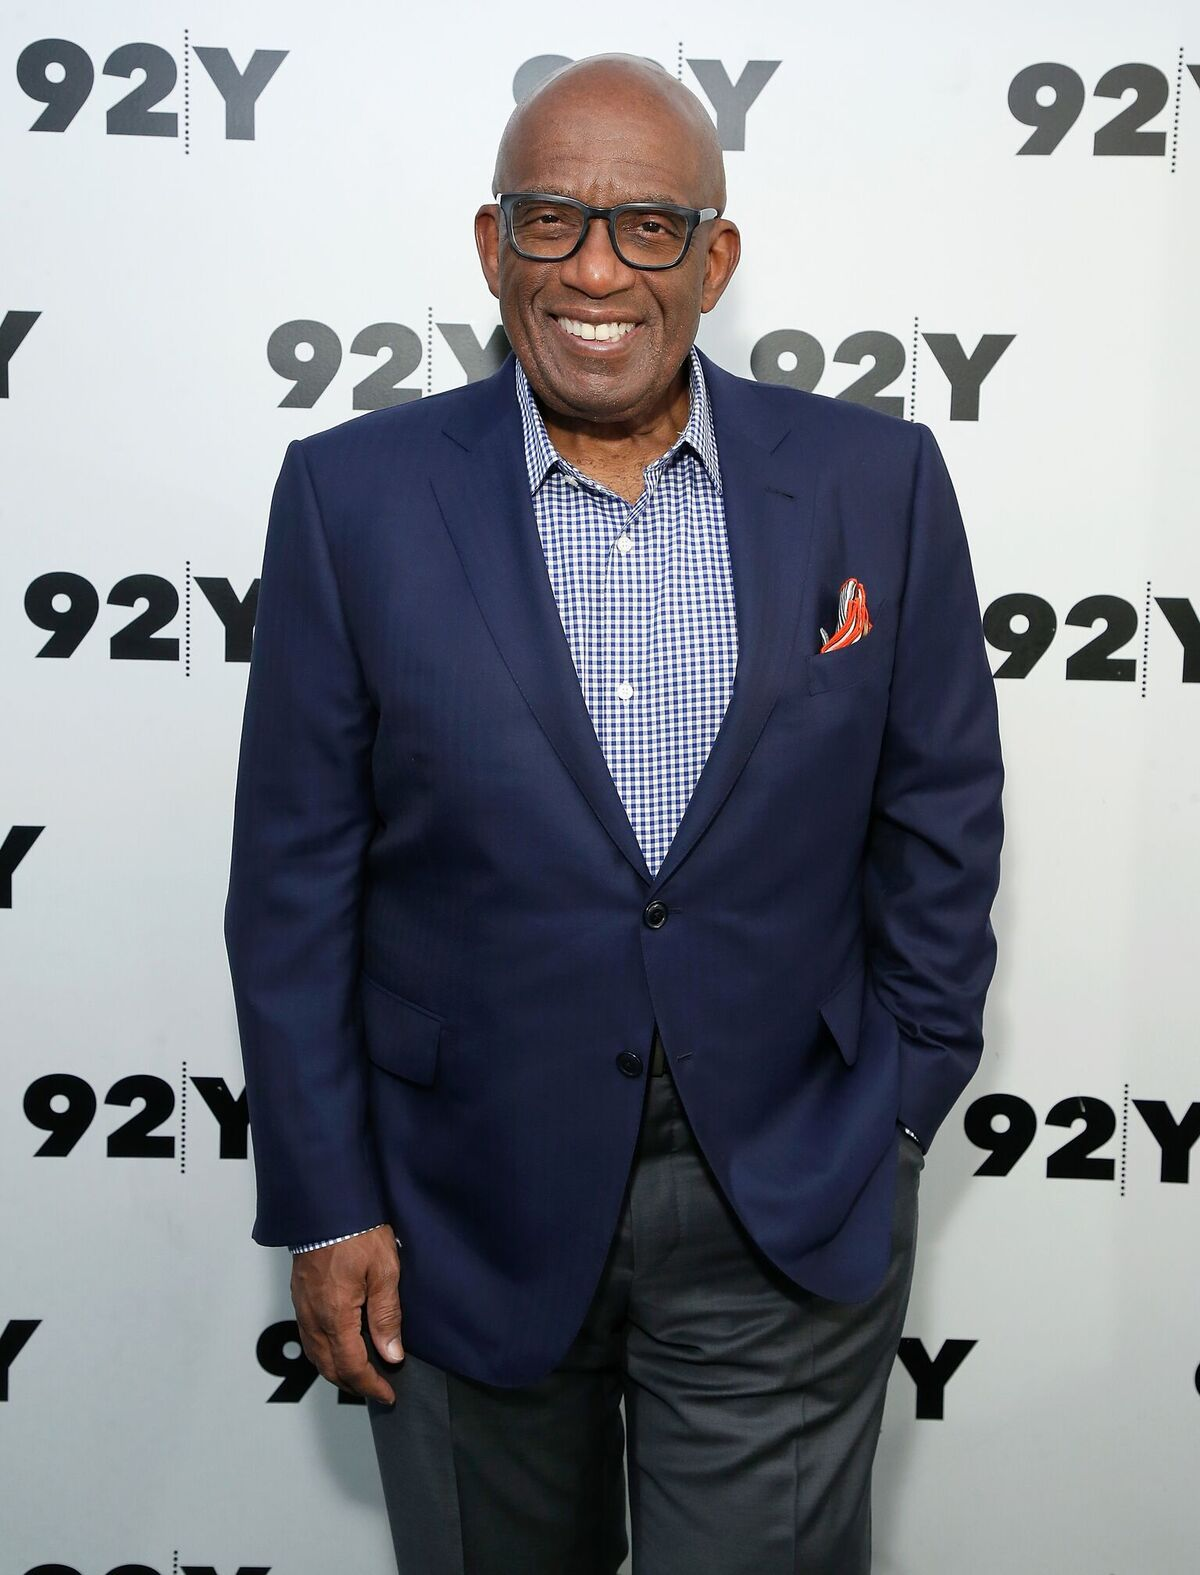 Al Roker attends the Natalie Morales in conversation with Al Roker event at 92nd Street Y on April 16, 2018 | Source: Getty Images